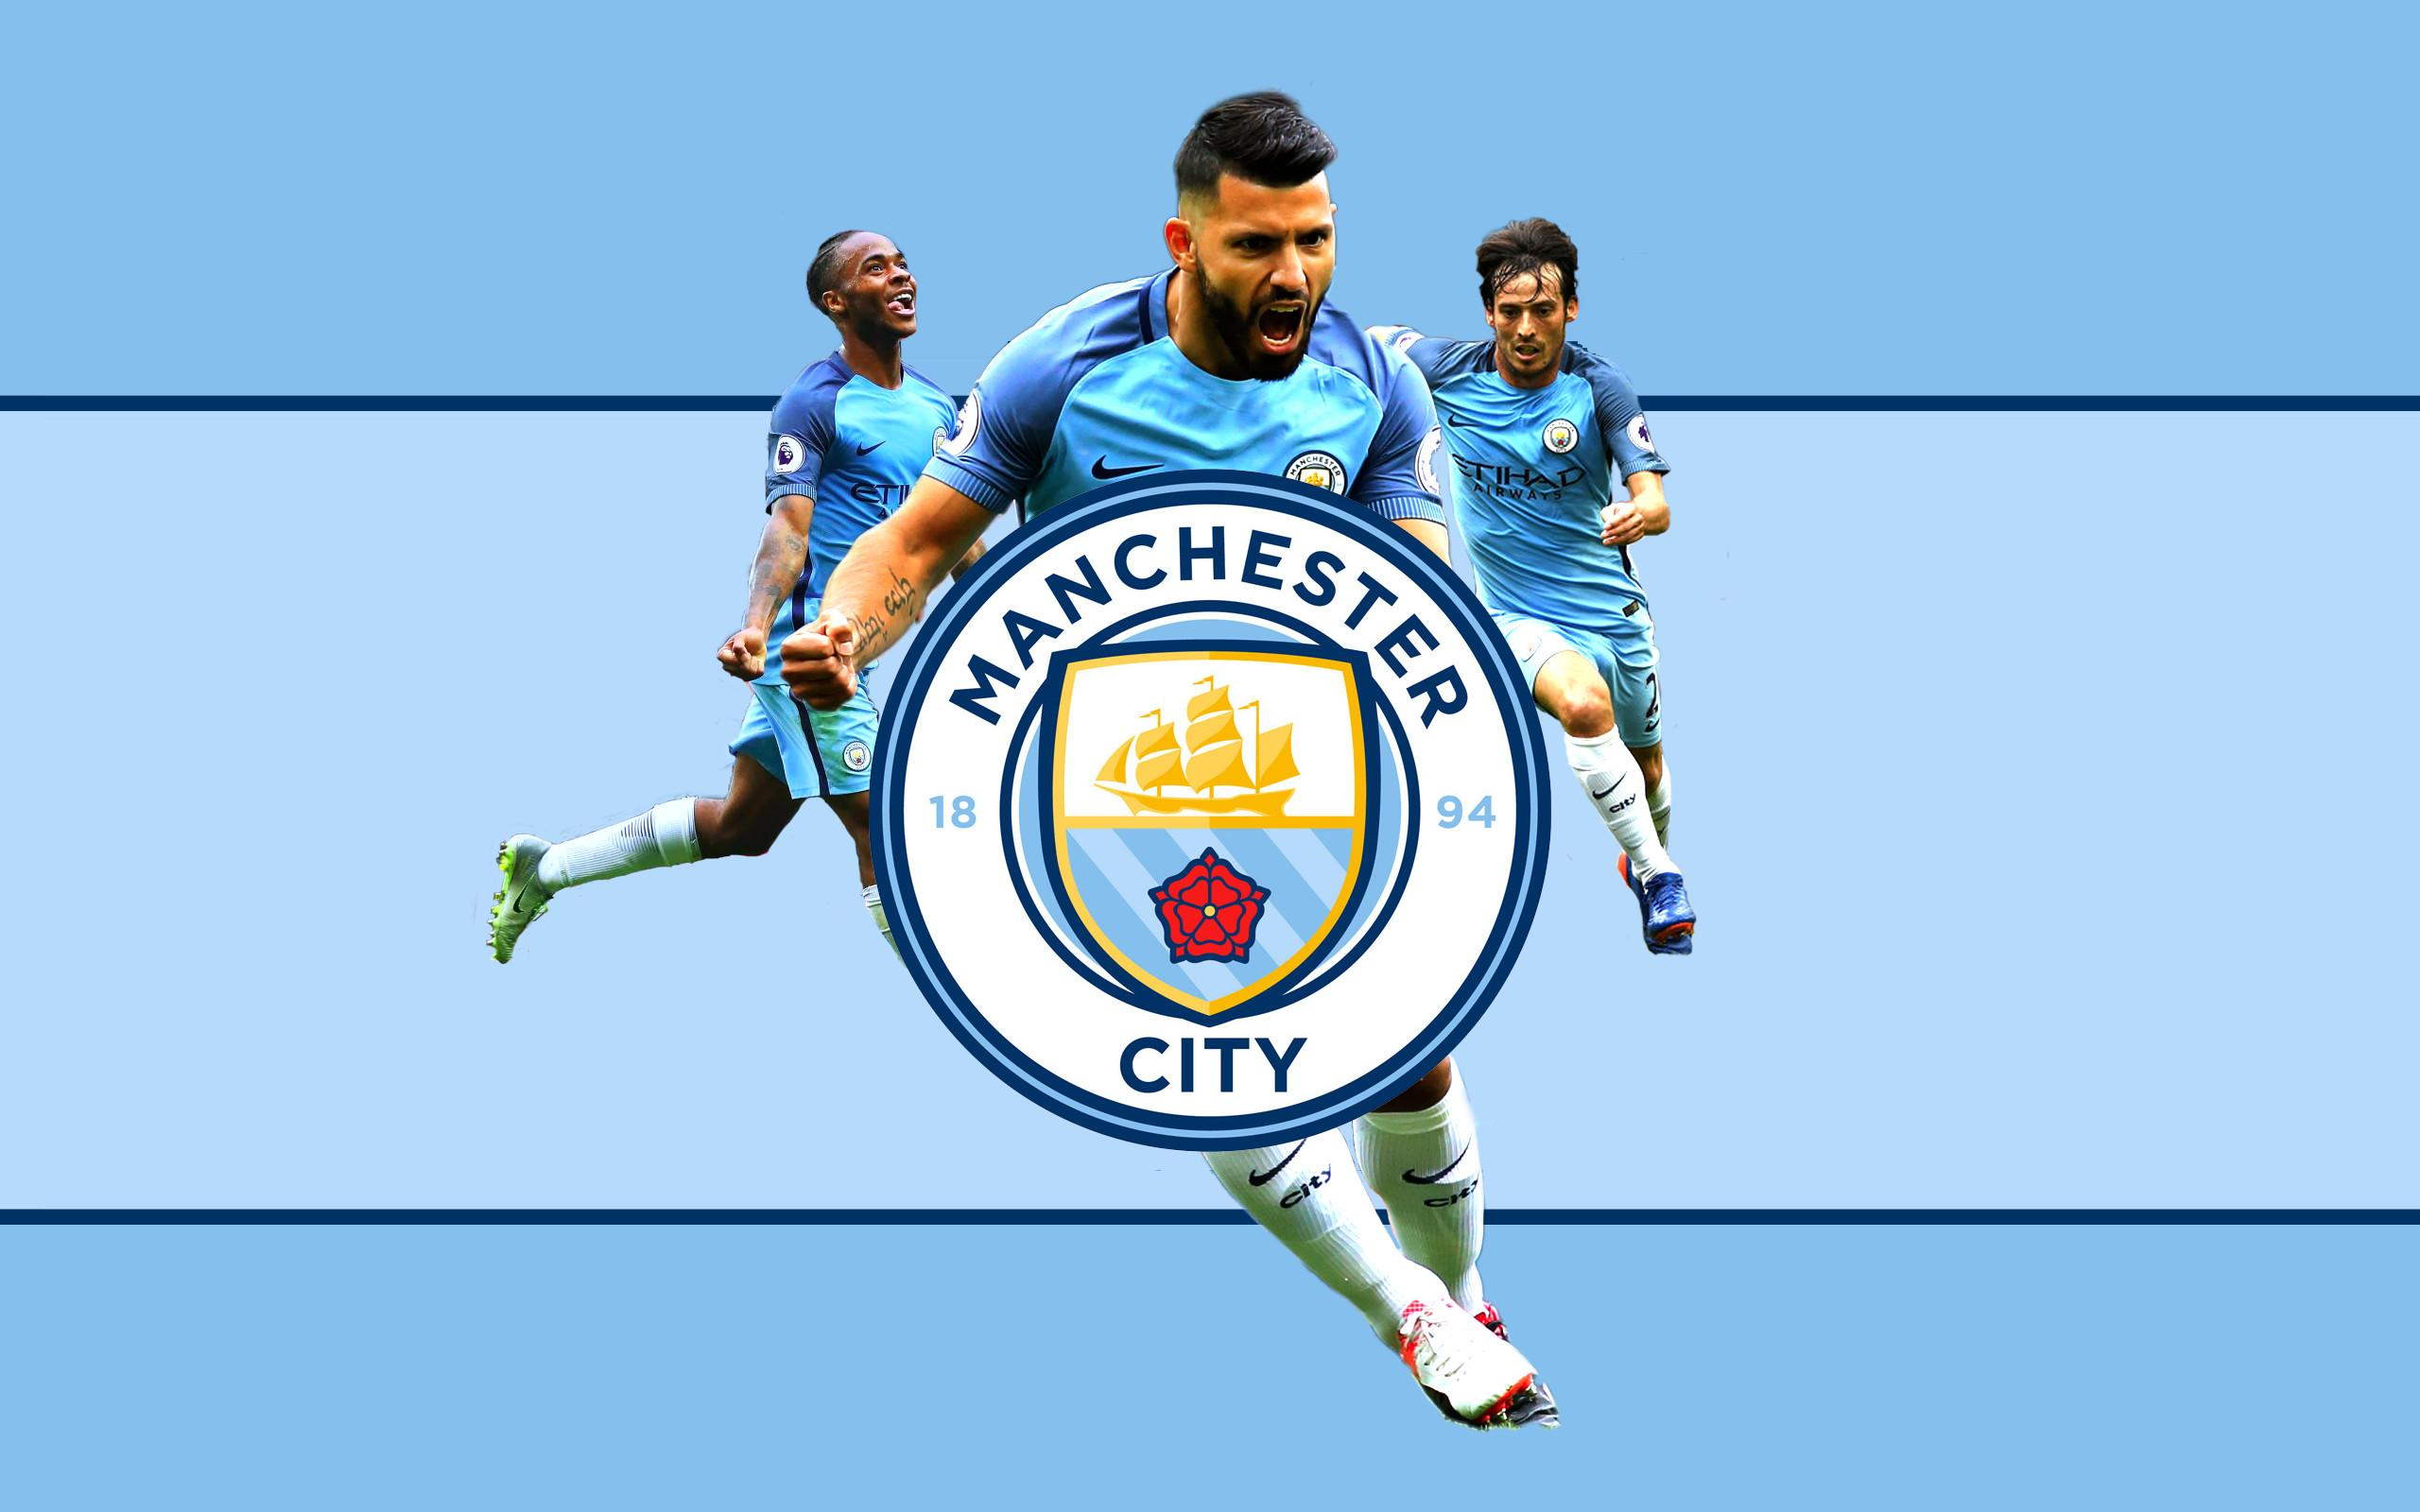 Manchester City Wallpapers 2018